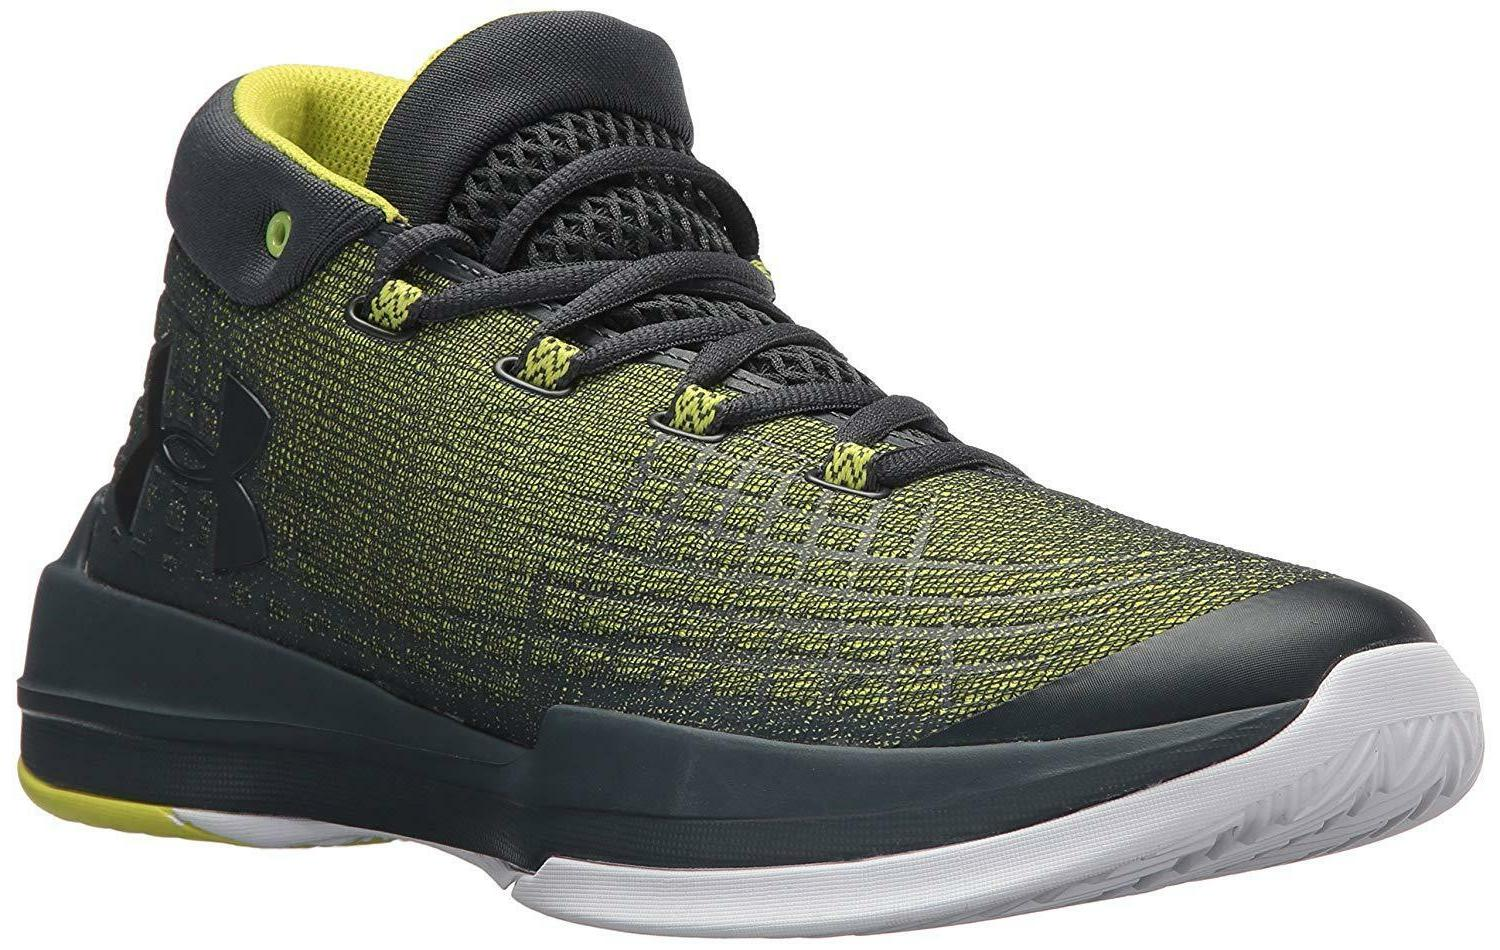 Under Armour Men's NXT Basketball Shoe